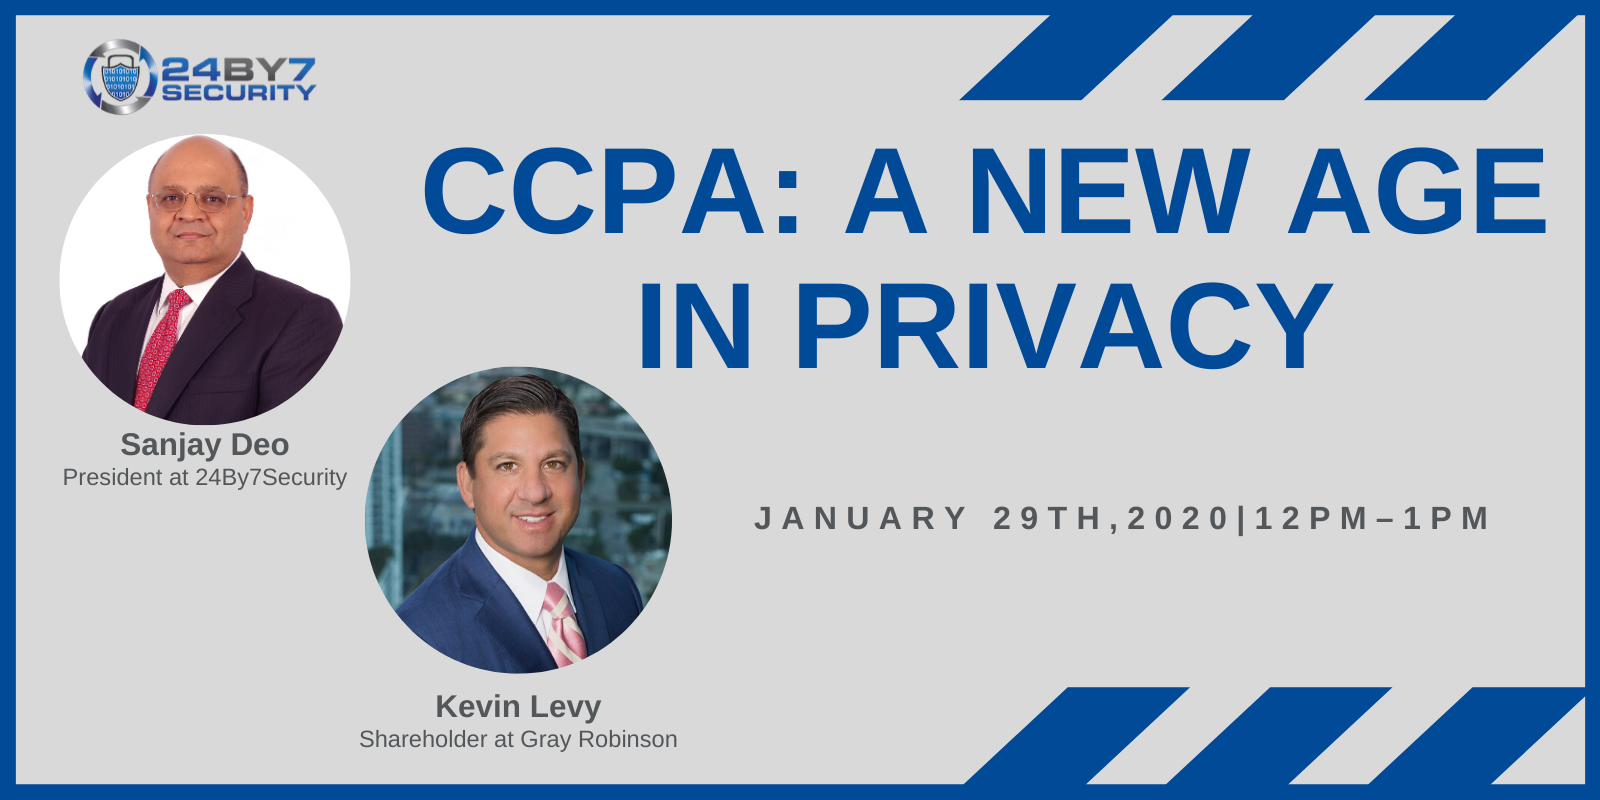 offers.24by7security.comhubfsCCPA_ A New Age In Privacy,WEB